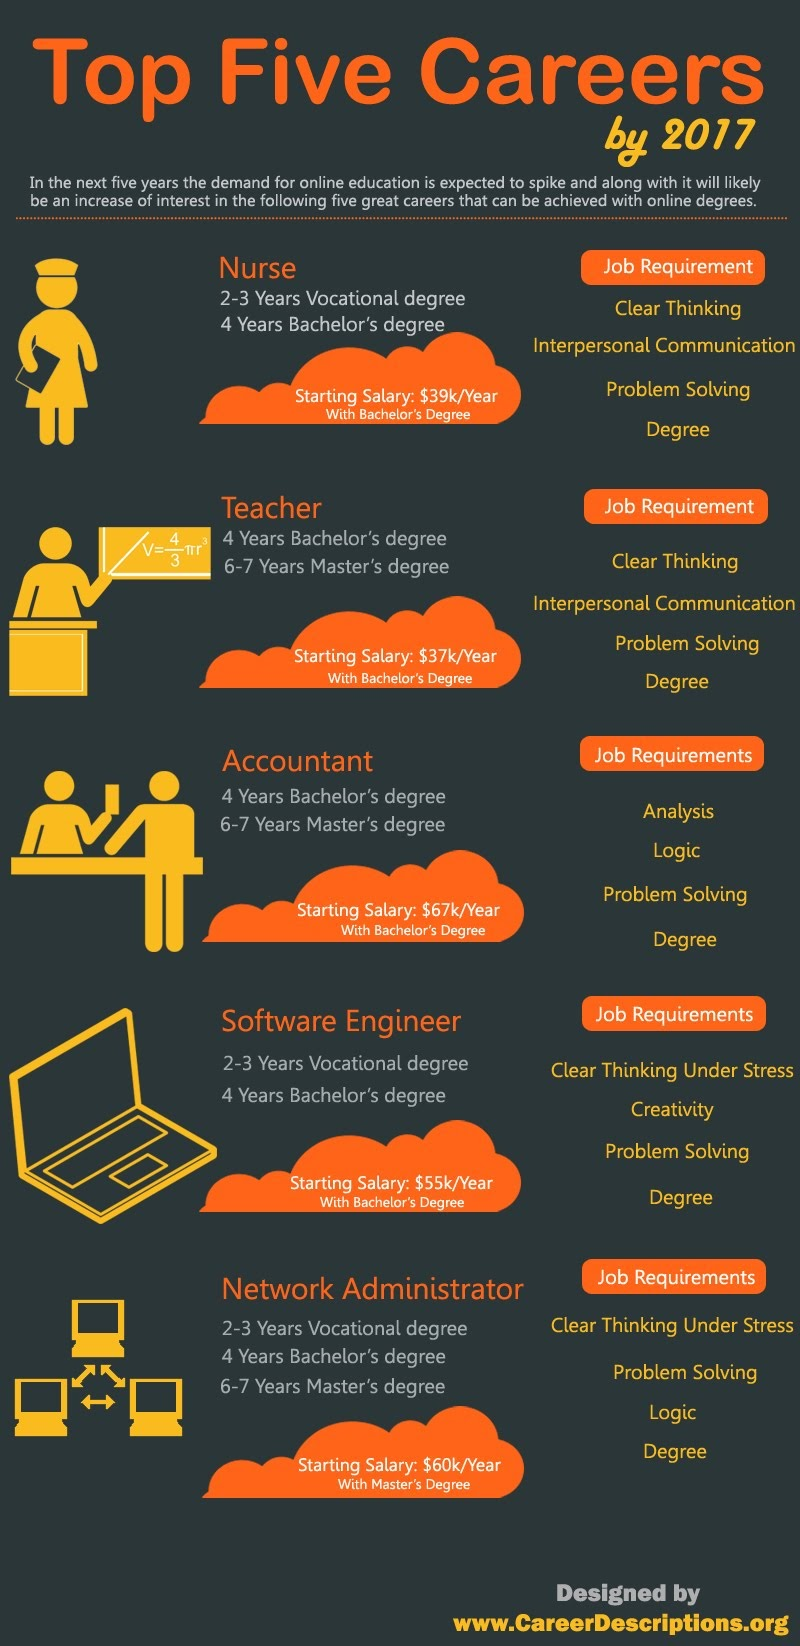 Top Five Career By 2017 #infographic